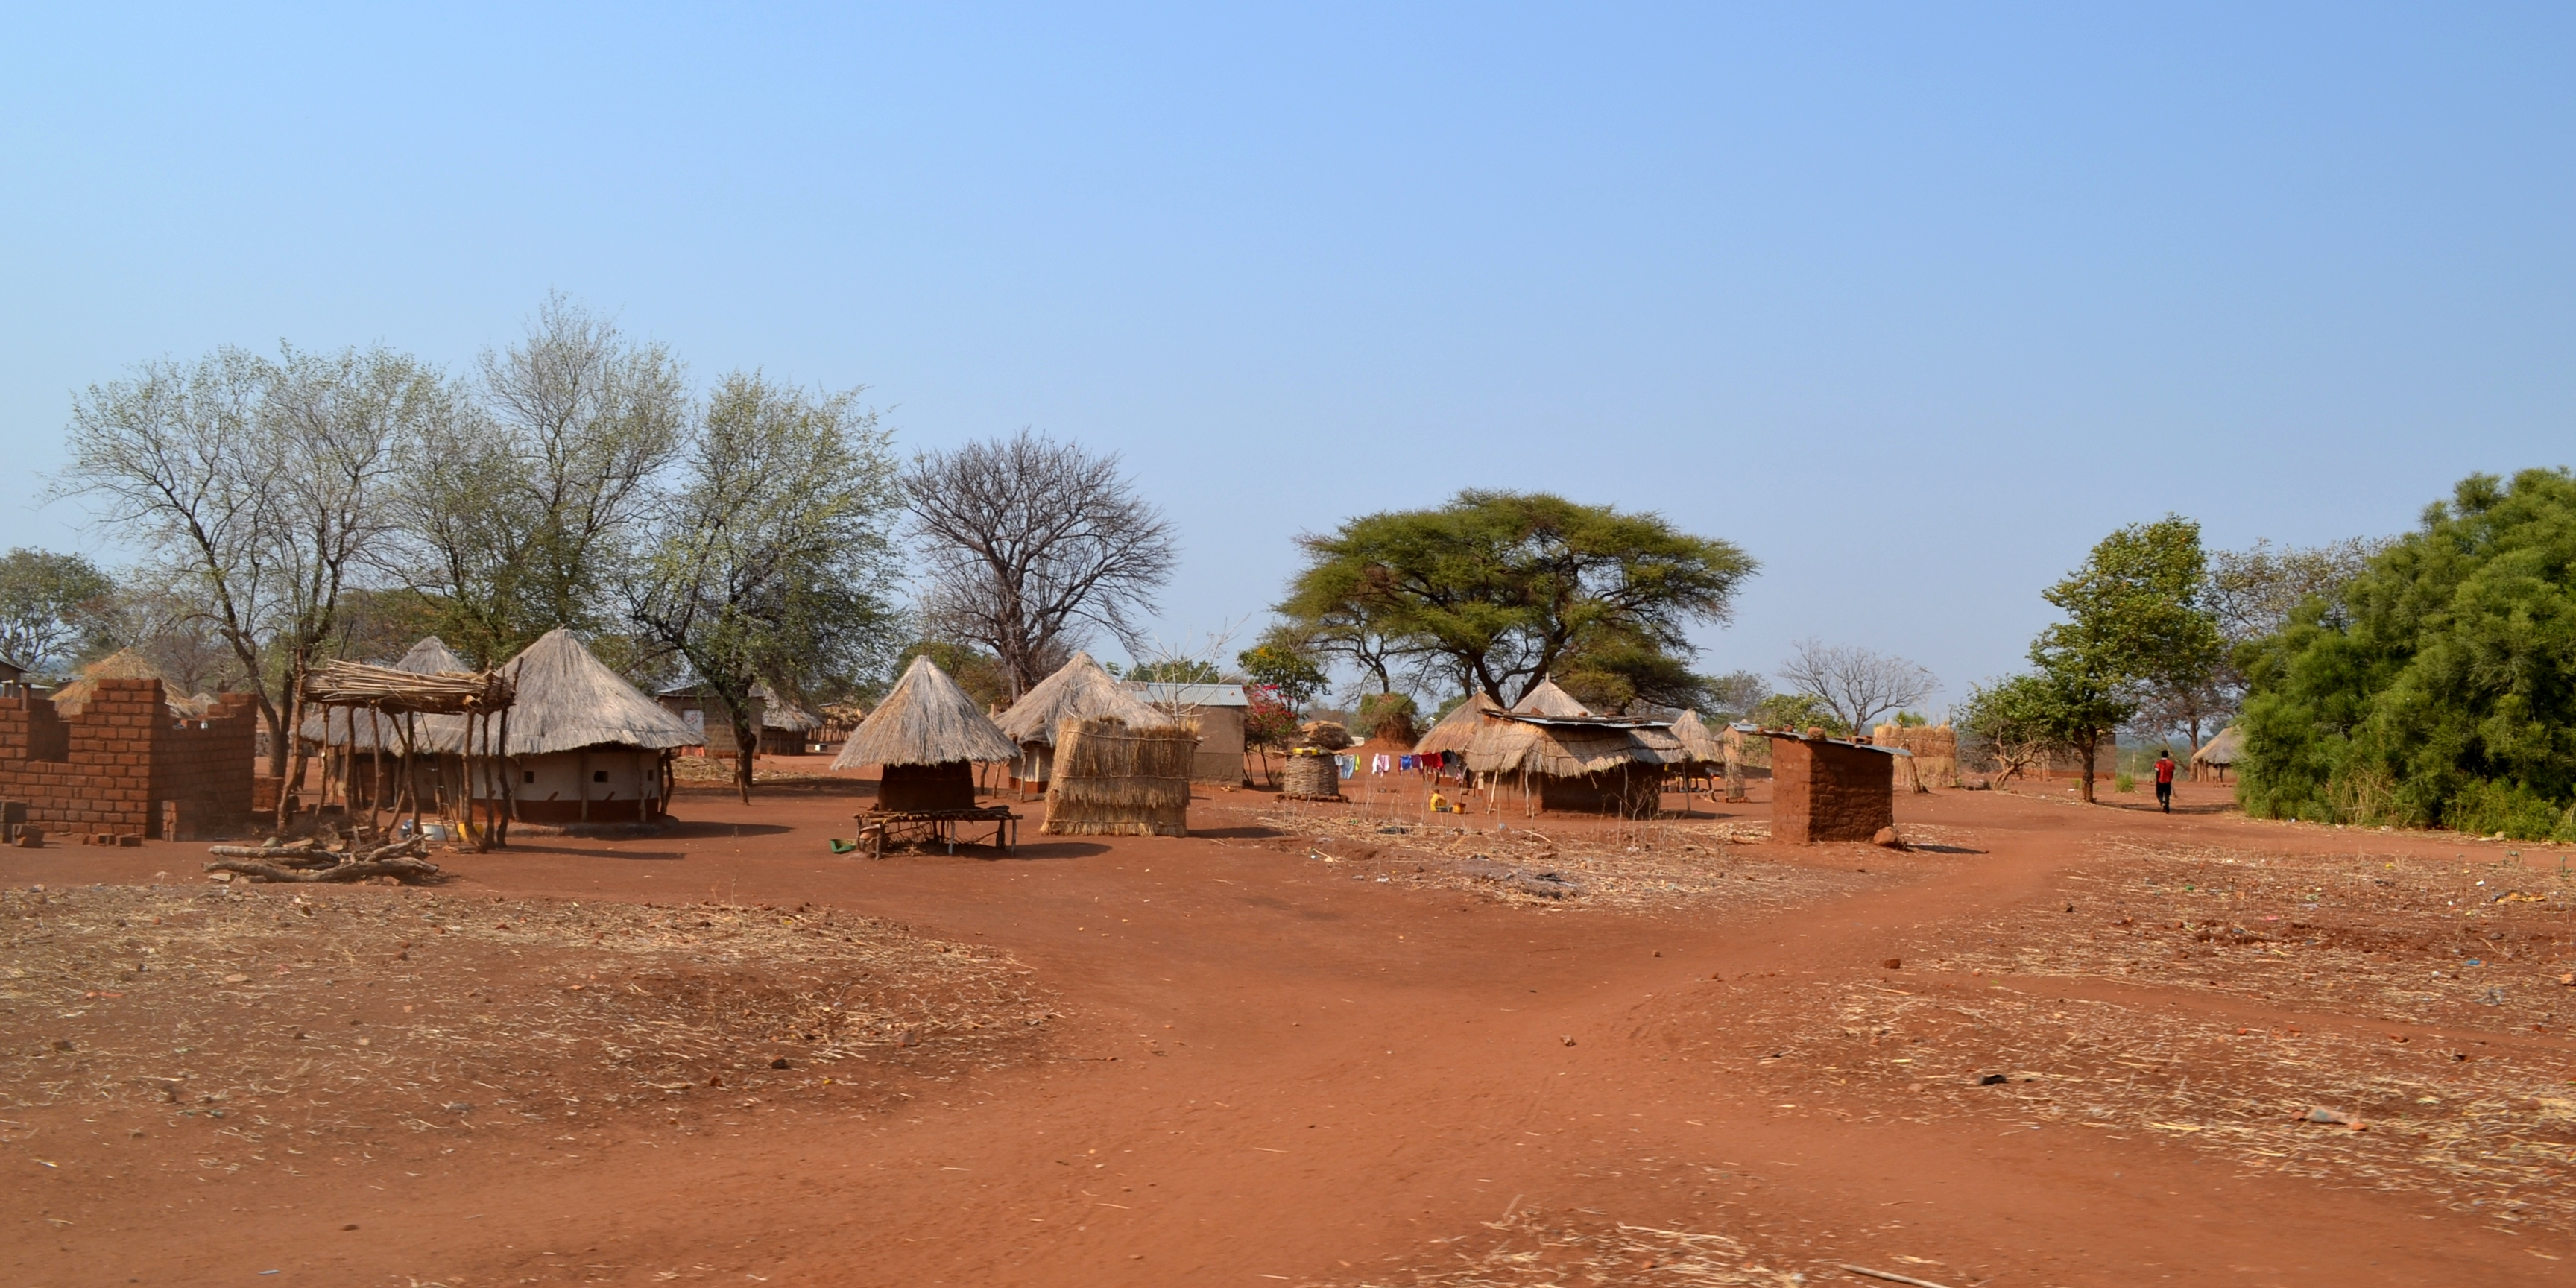 One of many remote villages we passed on our way back to Lusaka